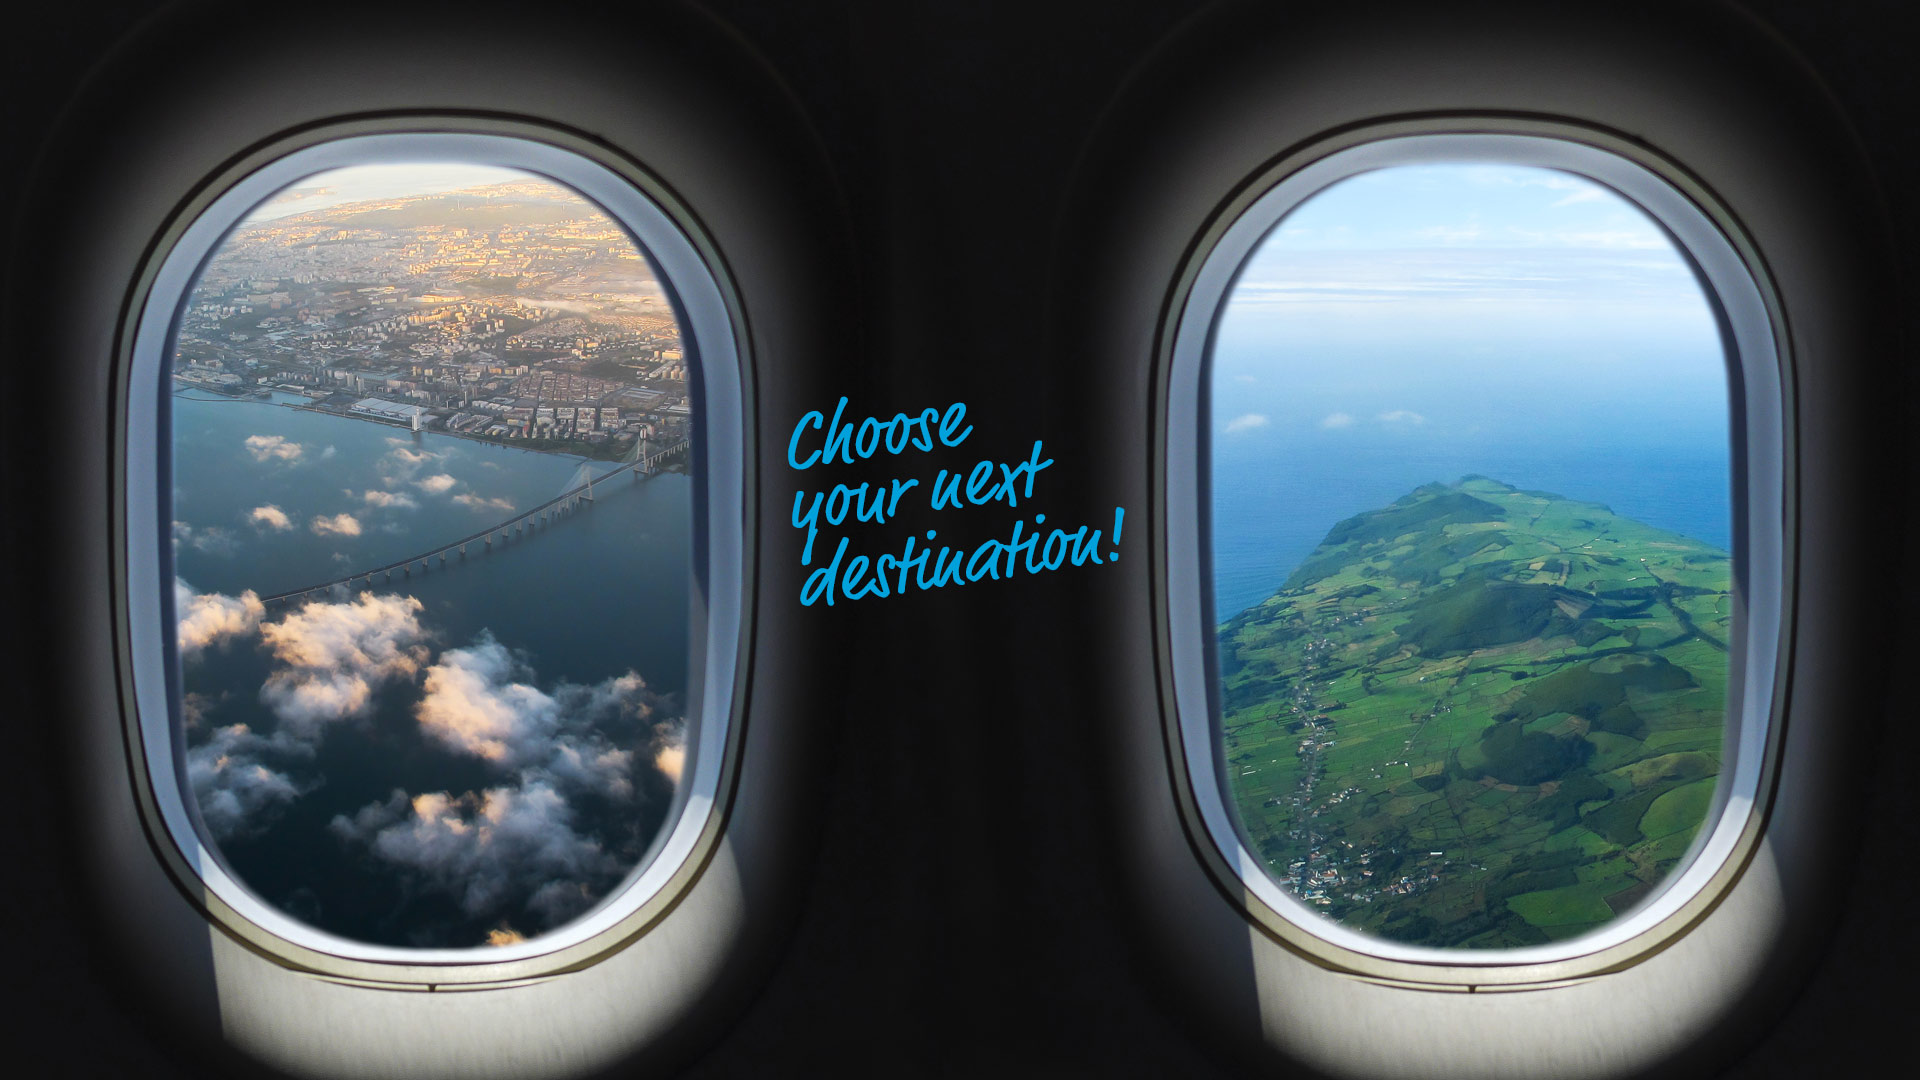 Choose your next destination!